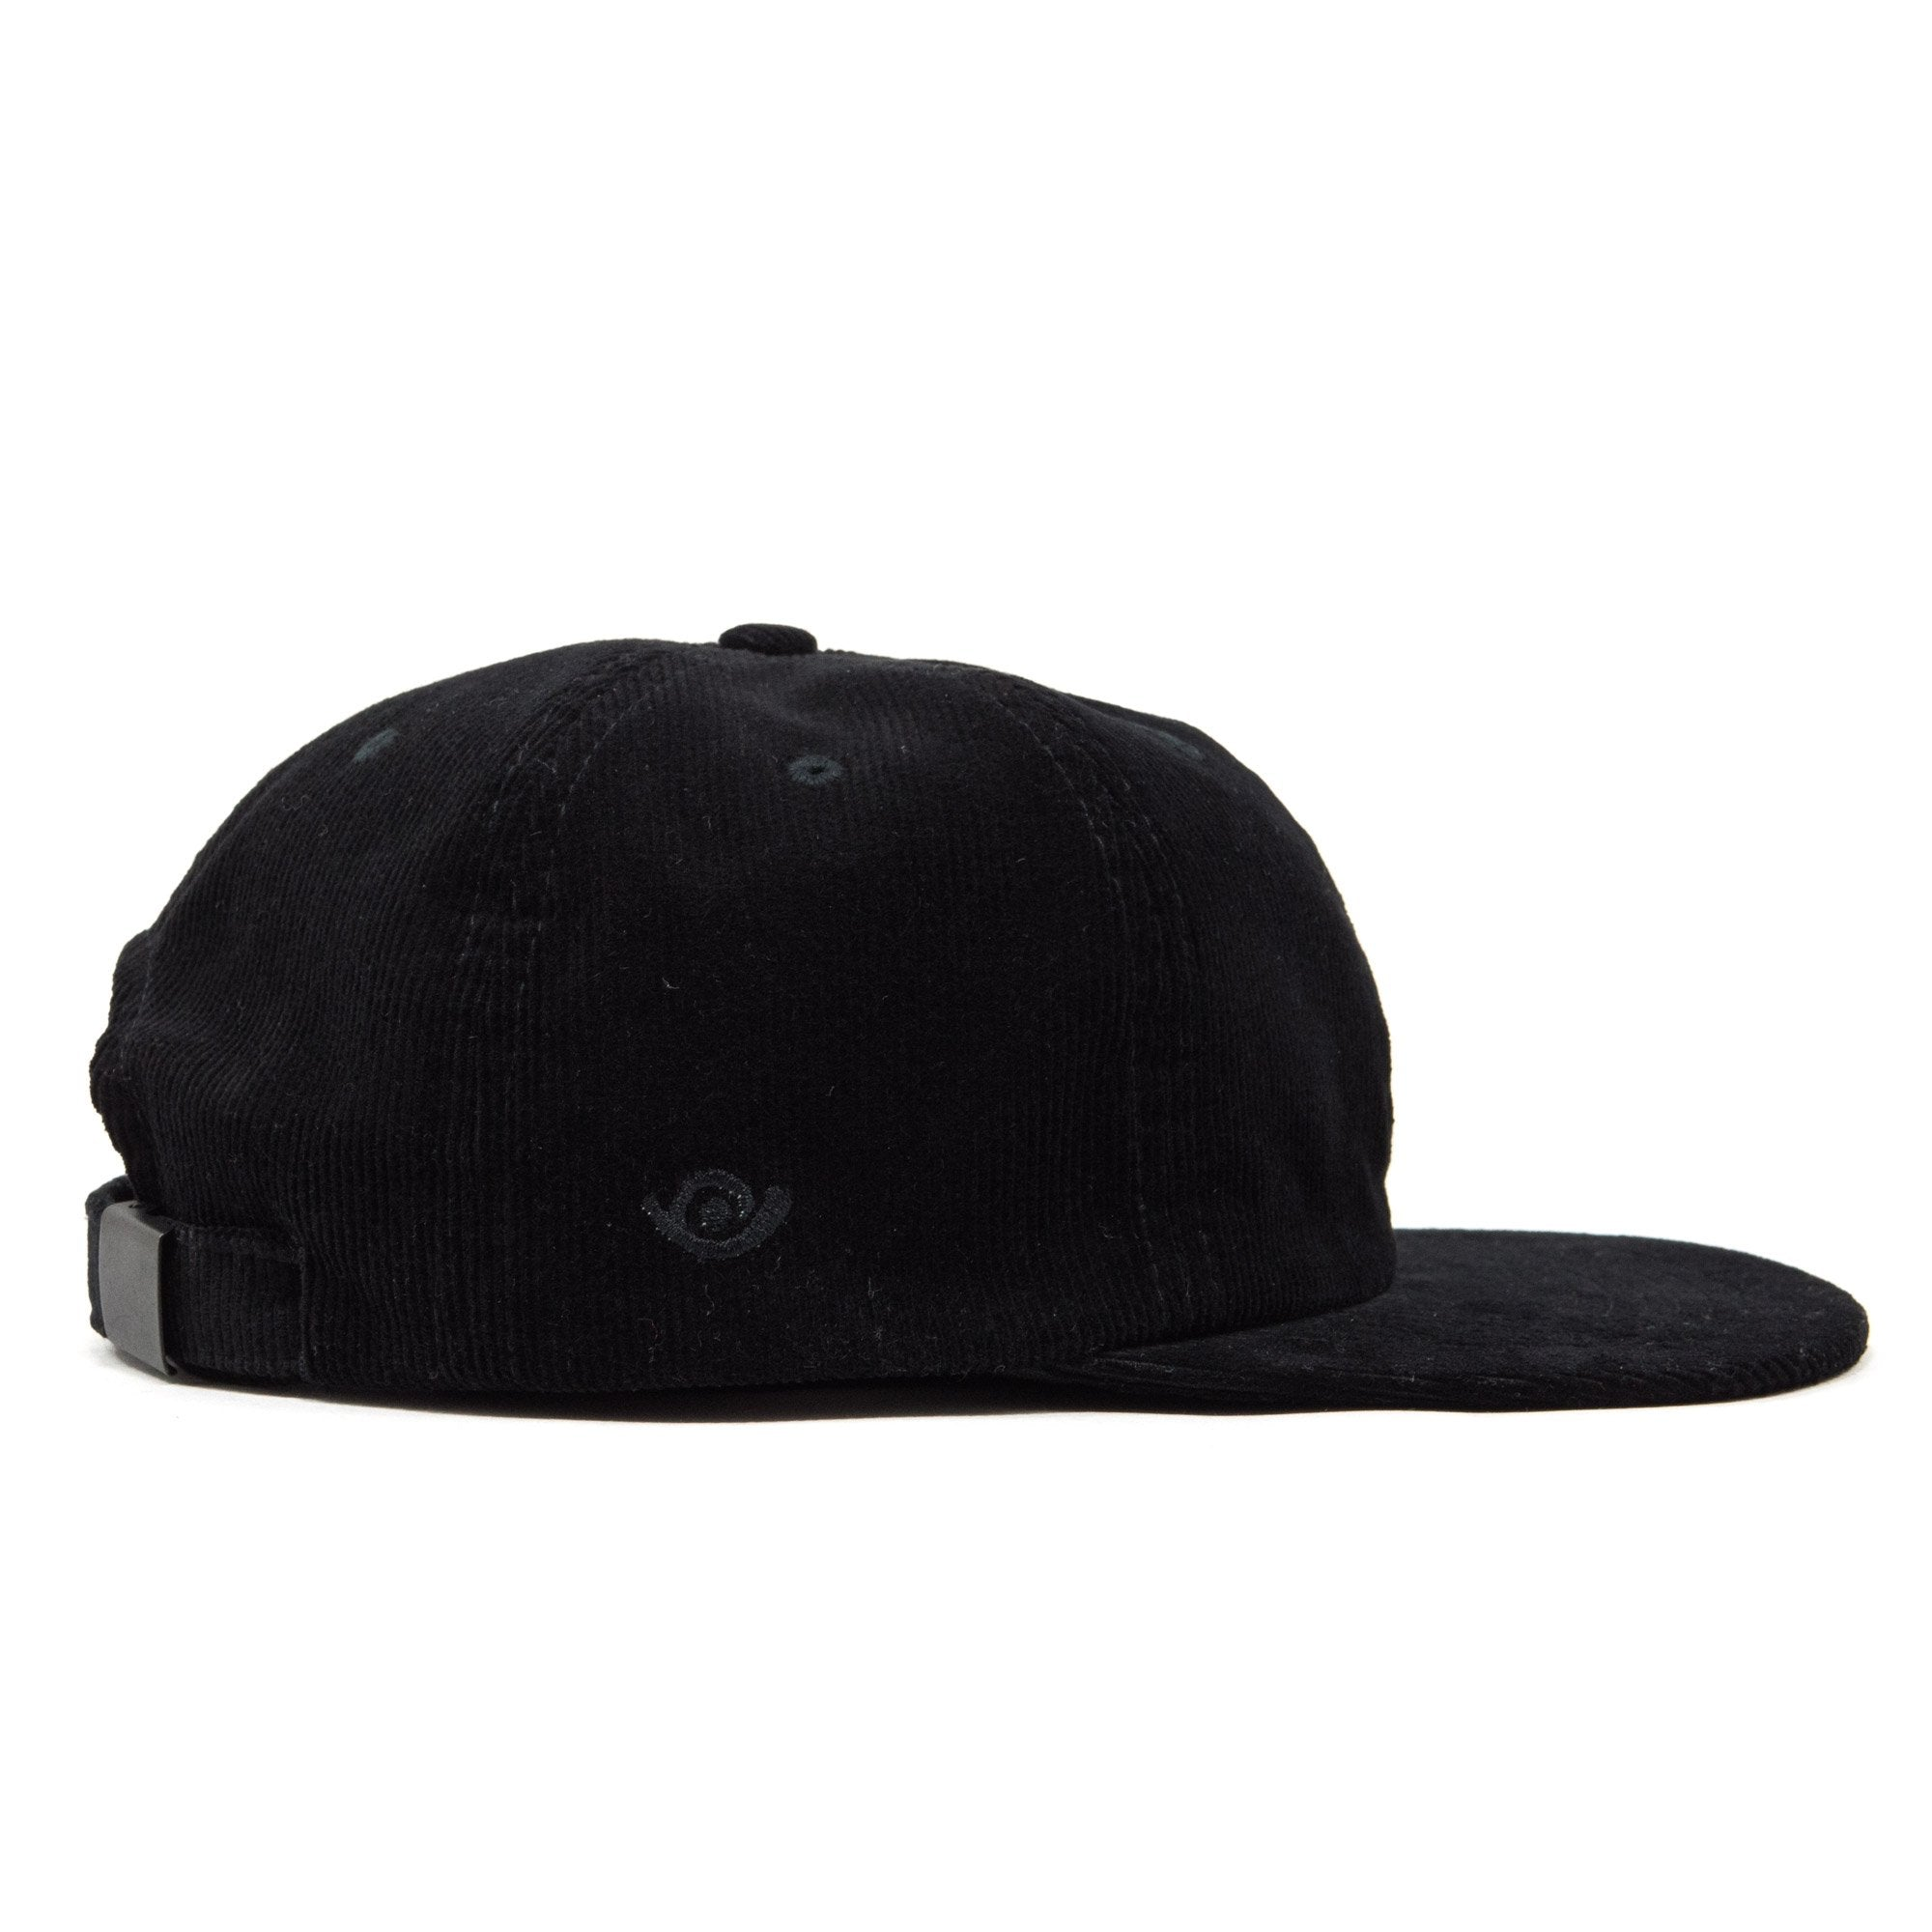 Rose Six panel cap Black